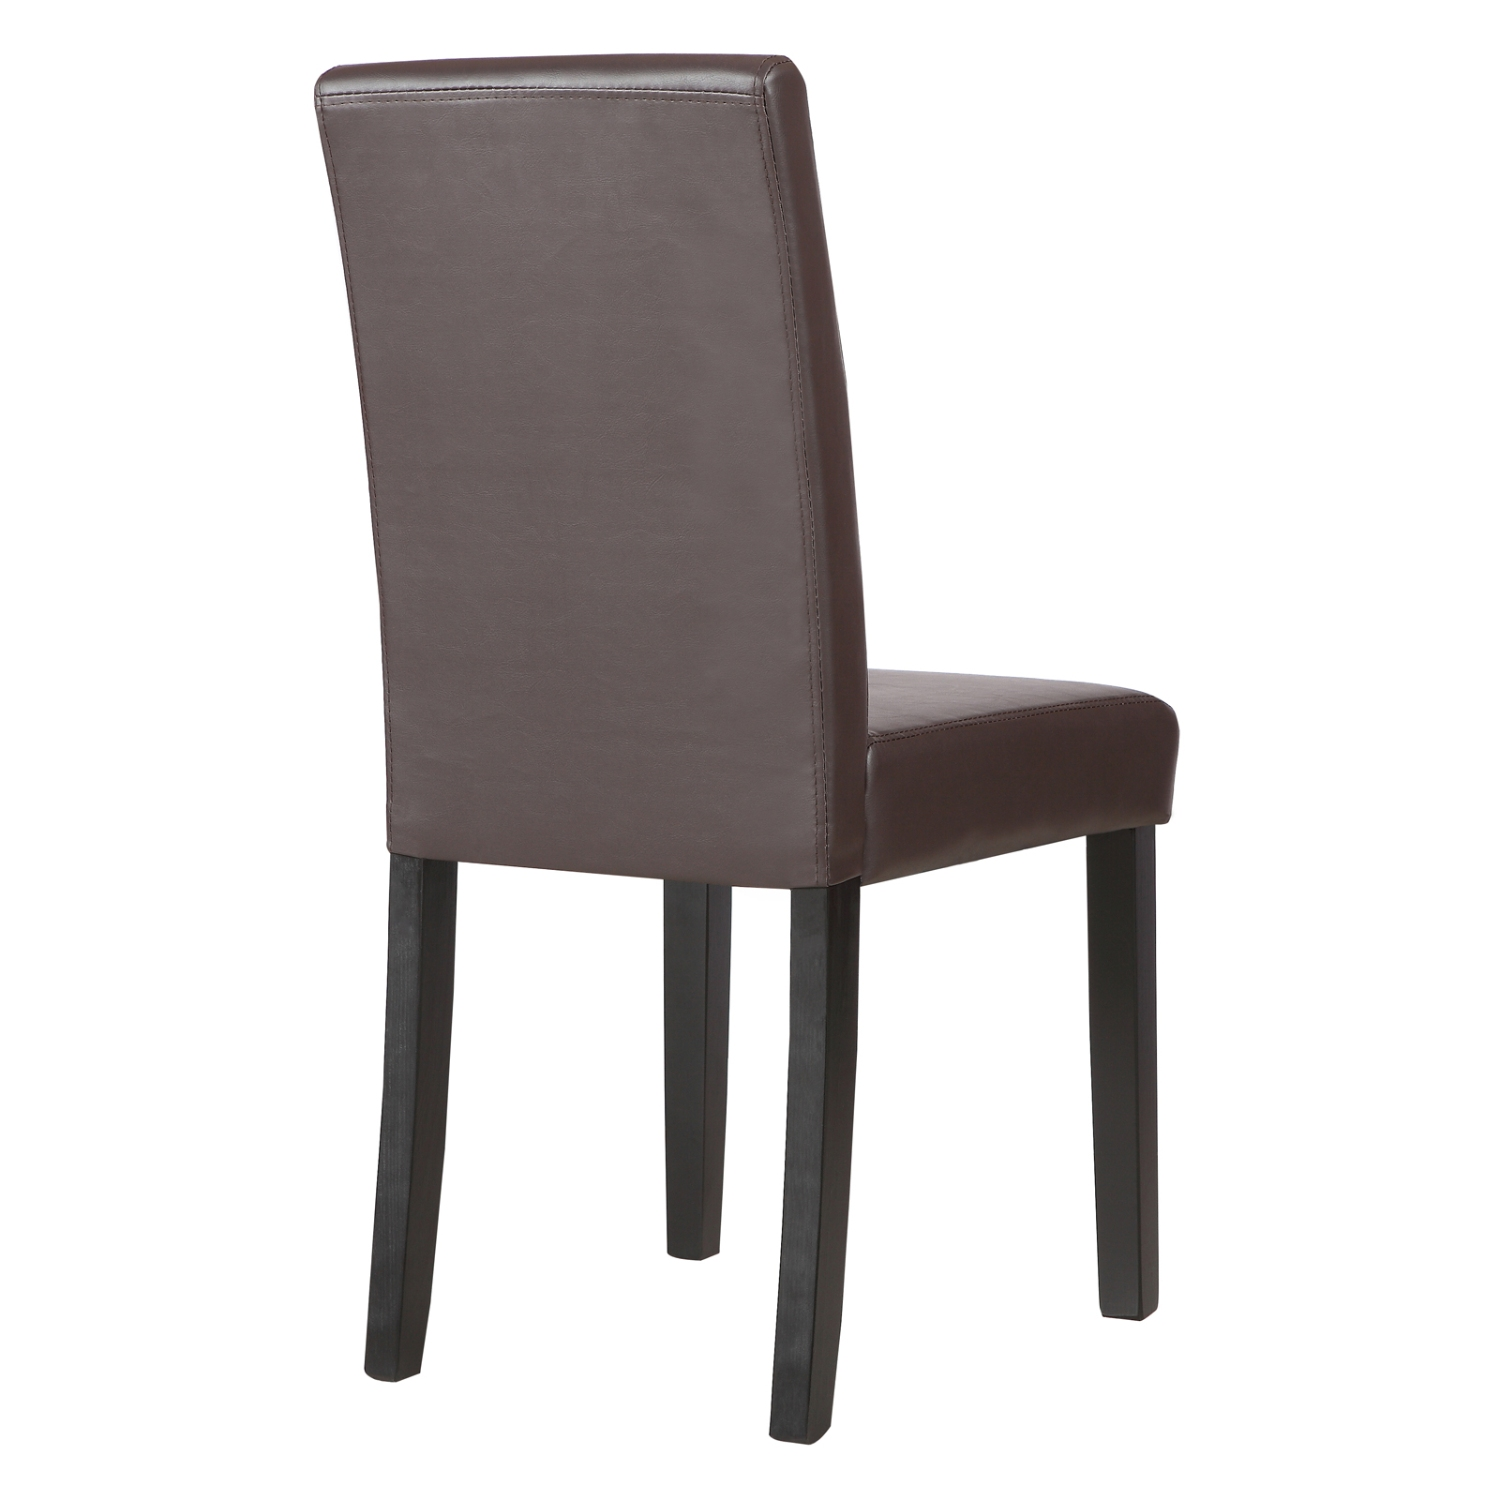 Leather Chairs For Dining Room: Set Of 2 Kitchen Dinette Dining Room Chair Elegant Design